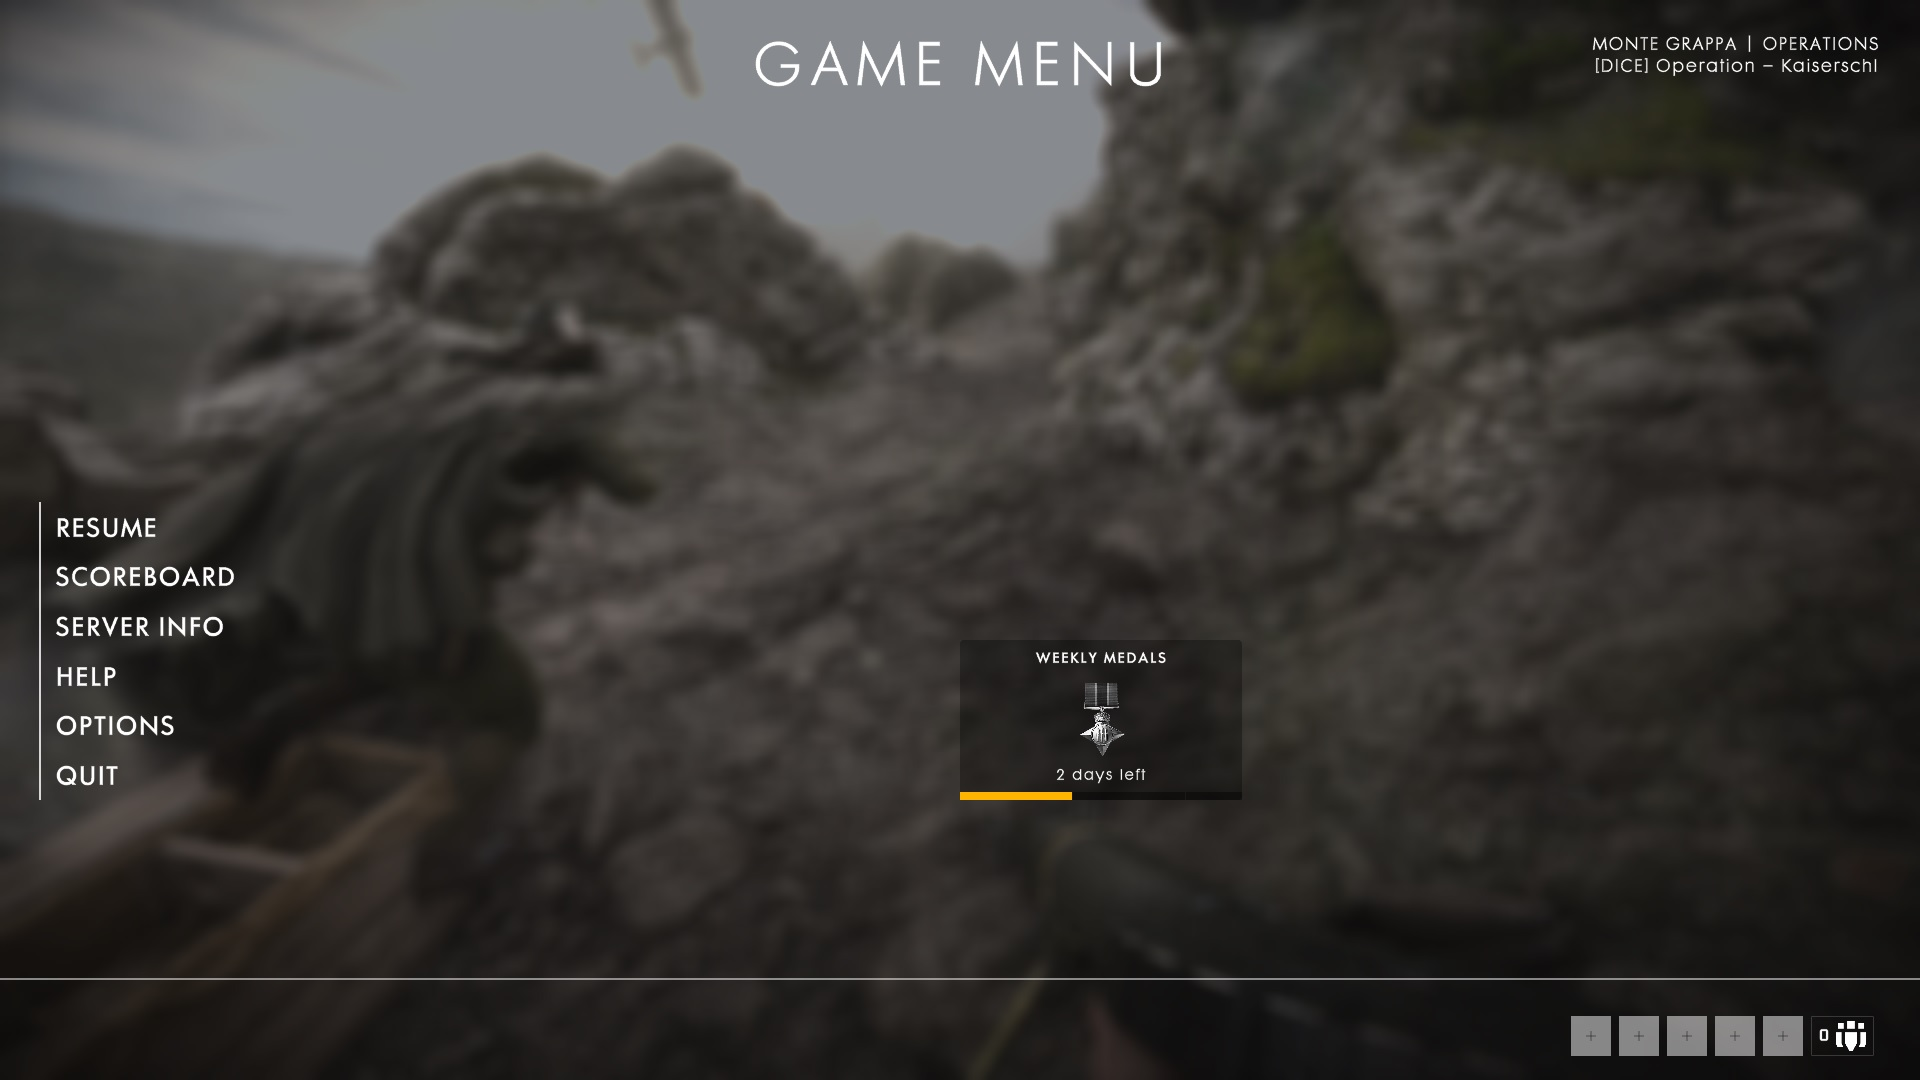 Re: BF1 - DEPLOY SCREEN BUG - Answer HQ